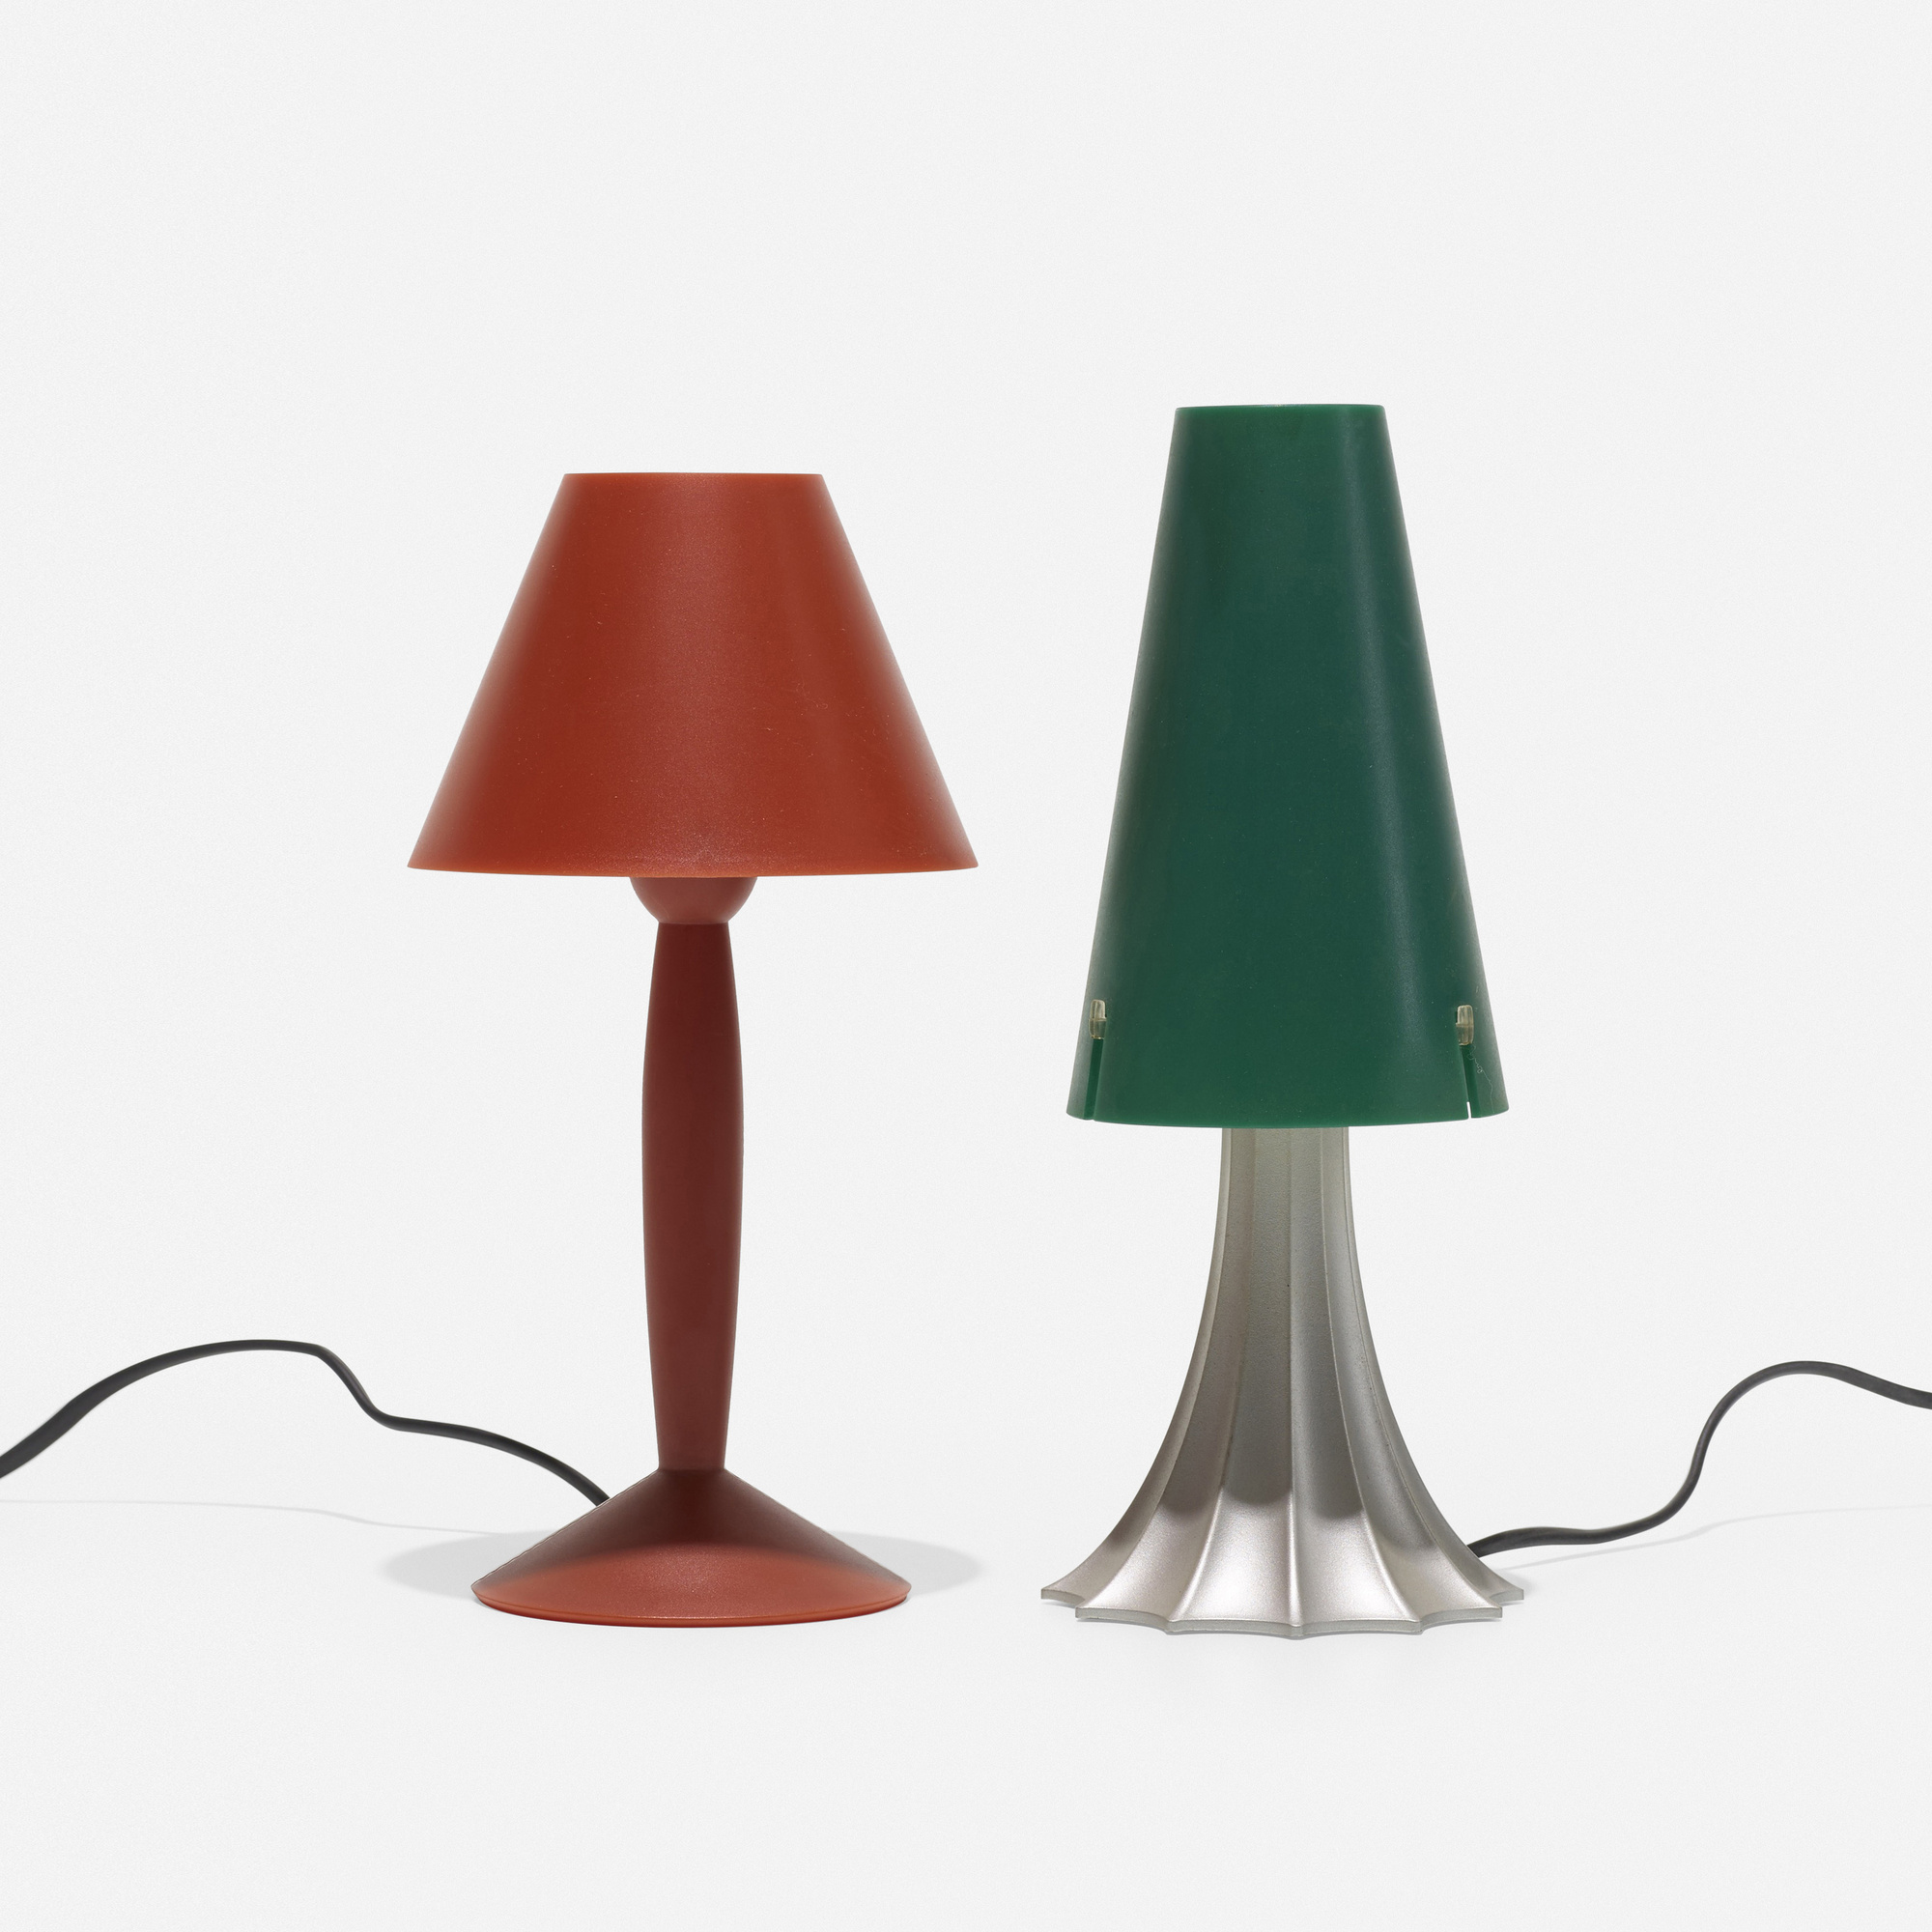 122: Philippe Starck and Alessandro Mendini / Miss Sissi and Mimi table lamps (2 of 3)